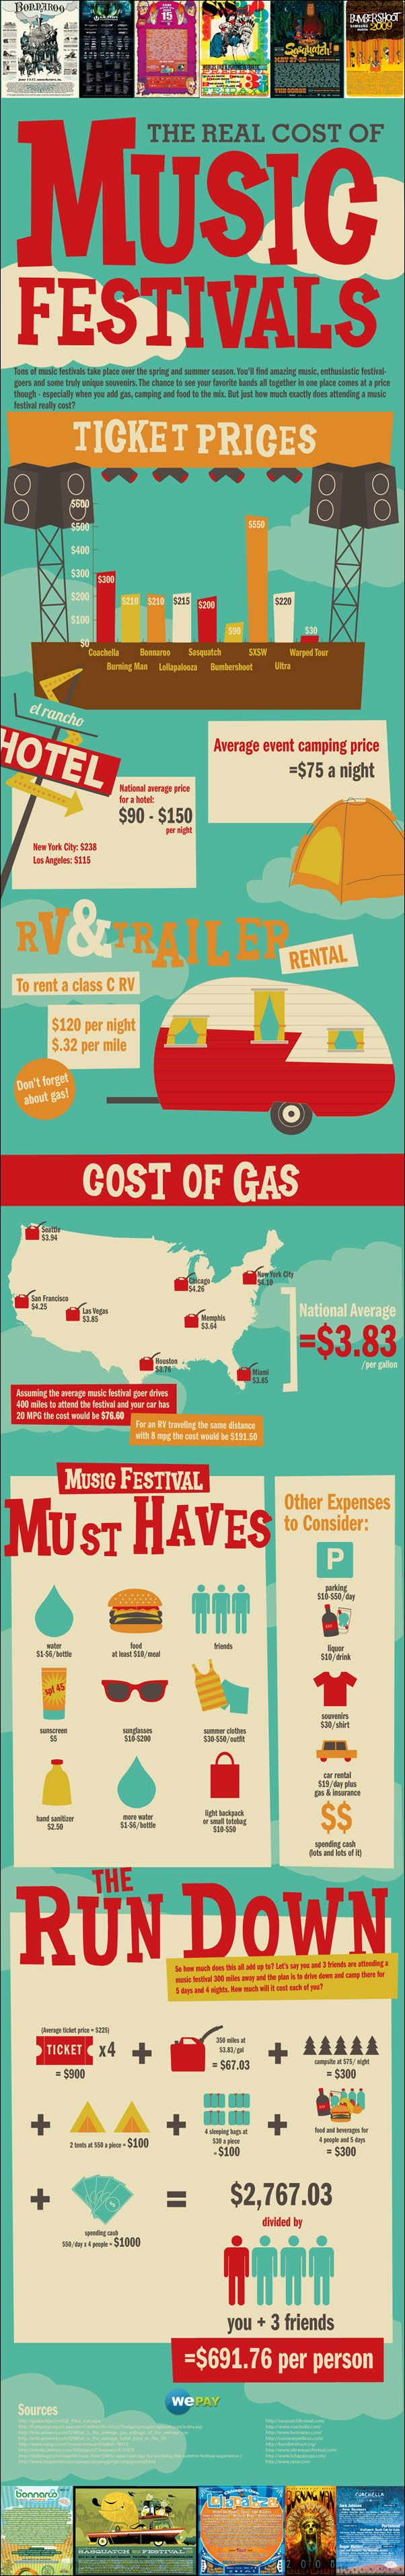 #INFOgraphic > Music Festival Expenses: Being at the start of the new season for the most popular music festivals, this fancy infographic budgets the real cost of attending your favorite event. Are you gonna go deep in your pocket or start thinking cutbacks?  > http://infographicsmania.com/music-festival-expenses/